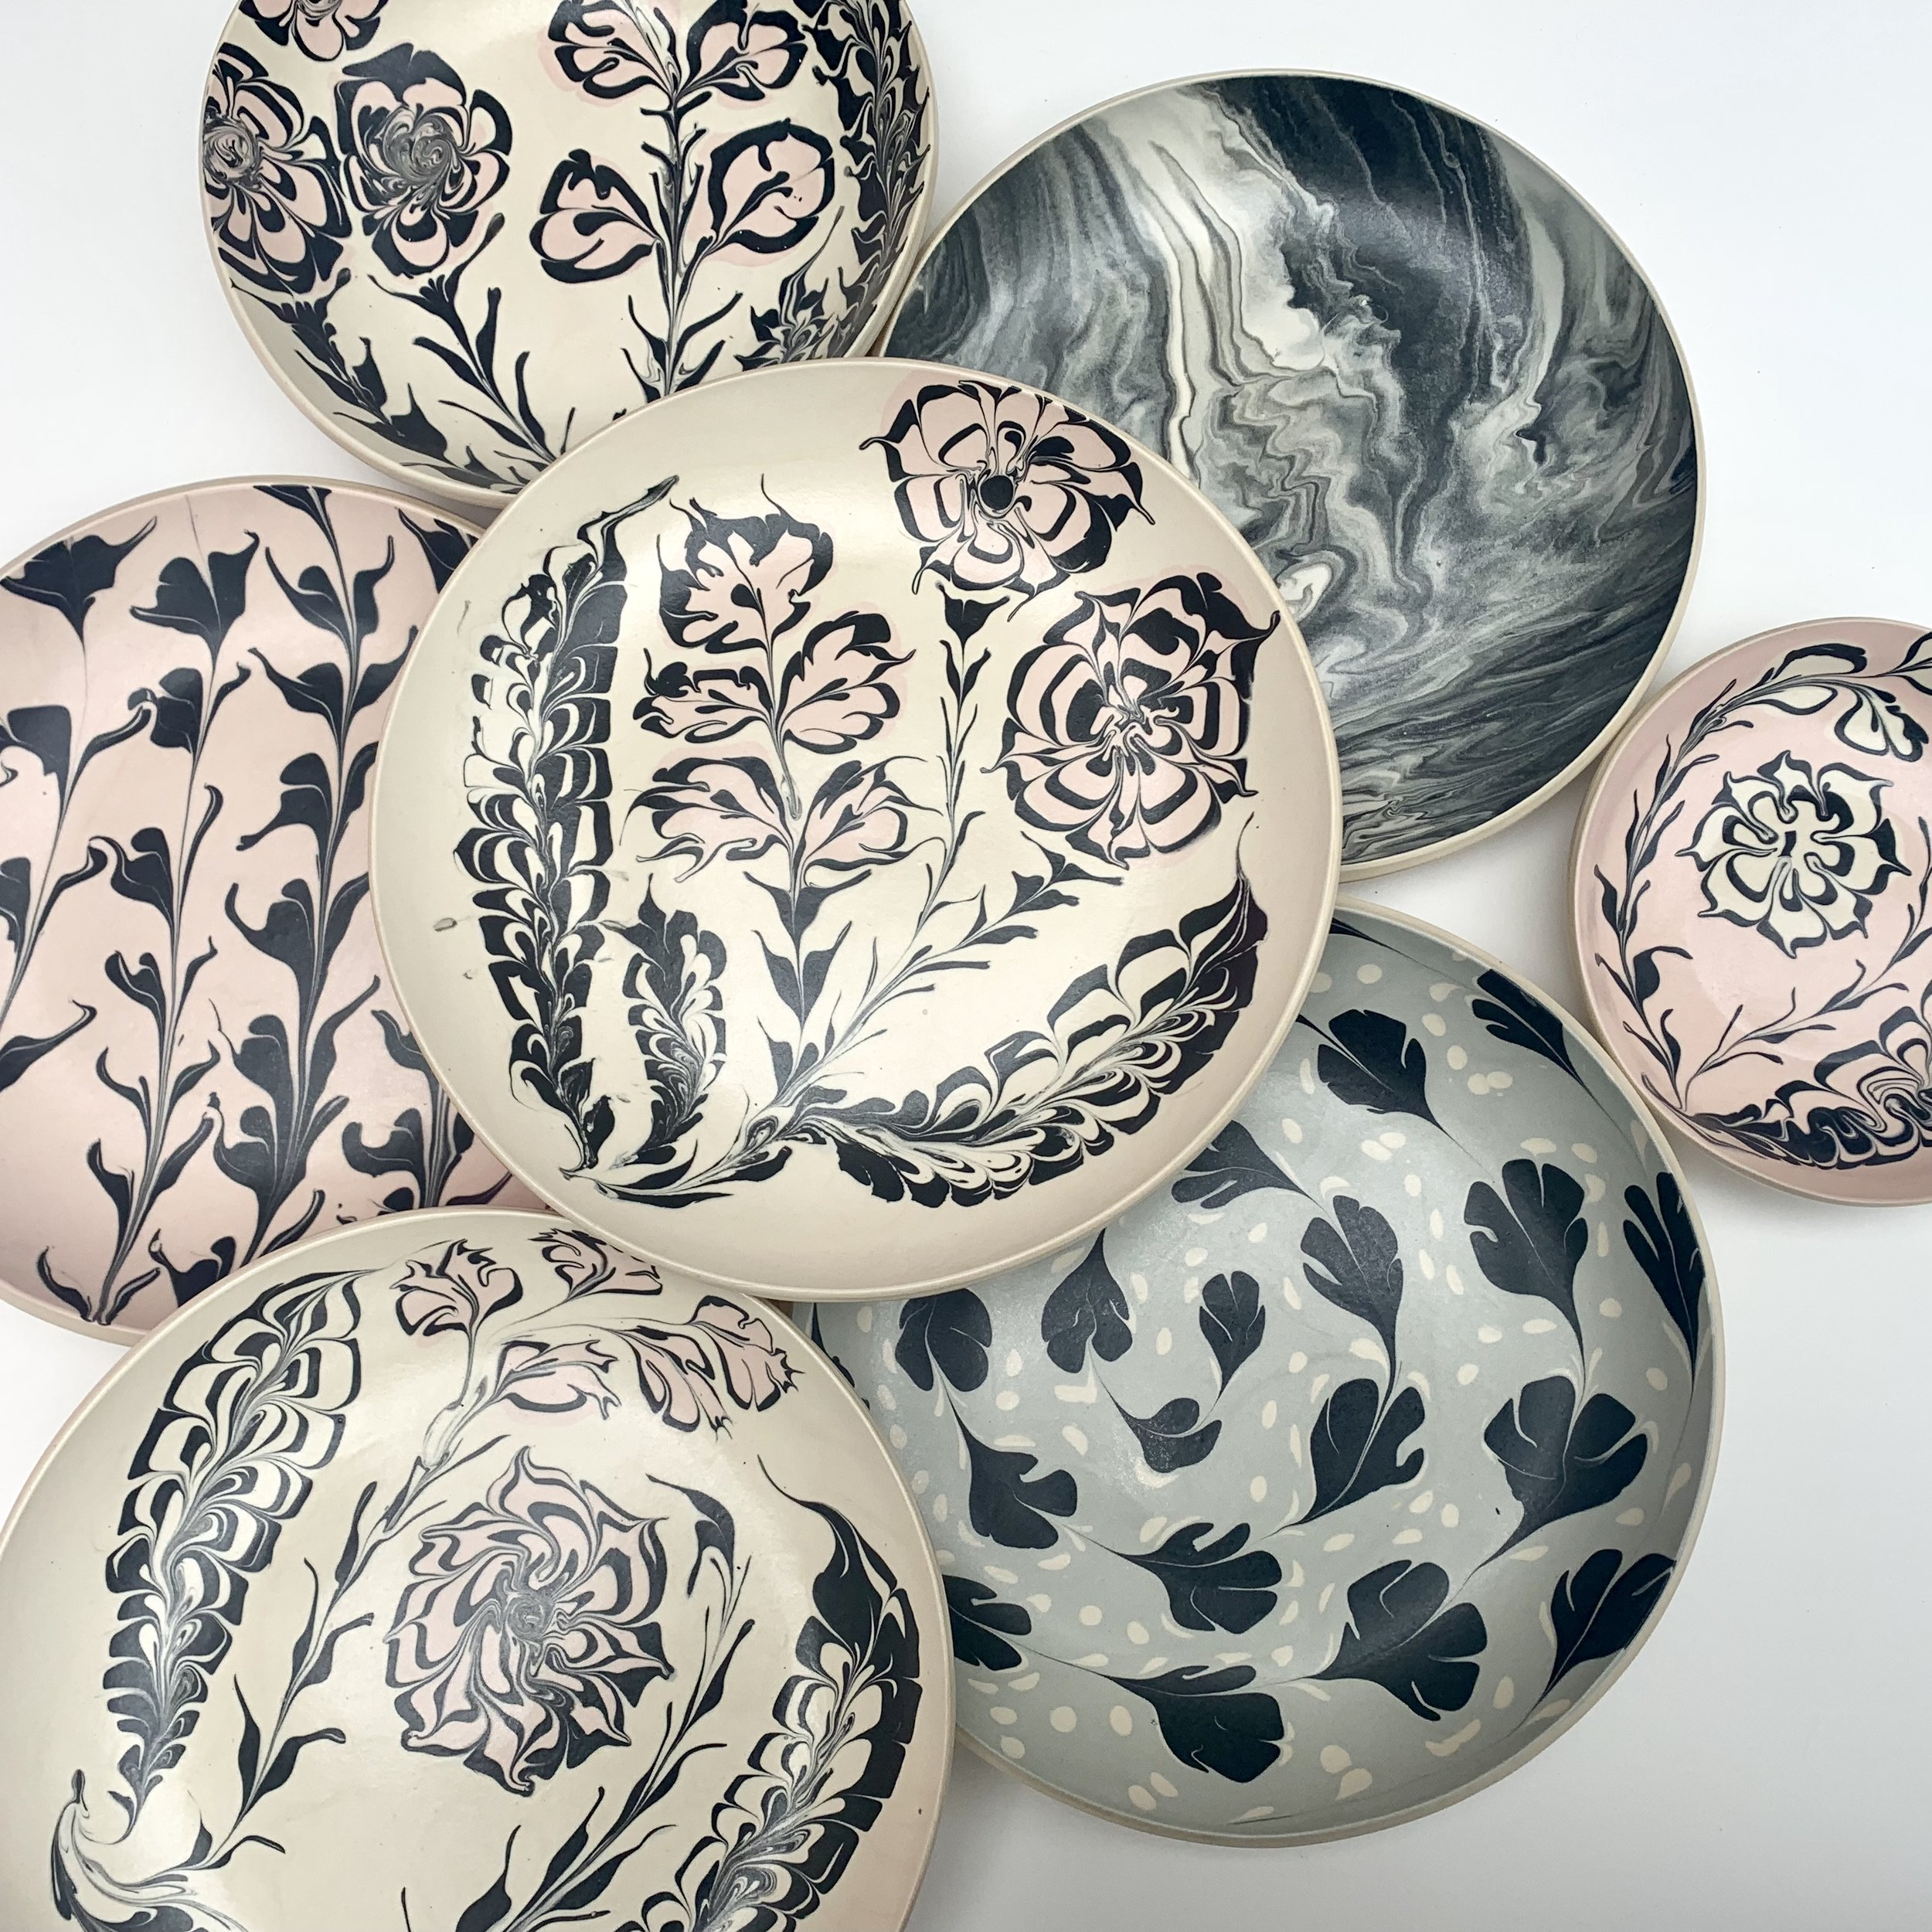 MORGAN LEVINE CERAMICS